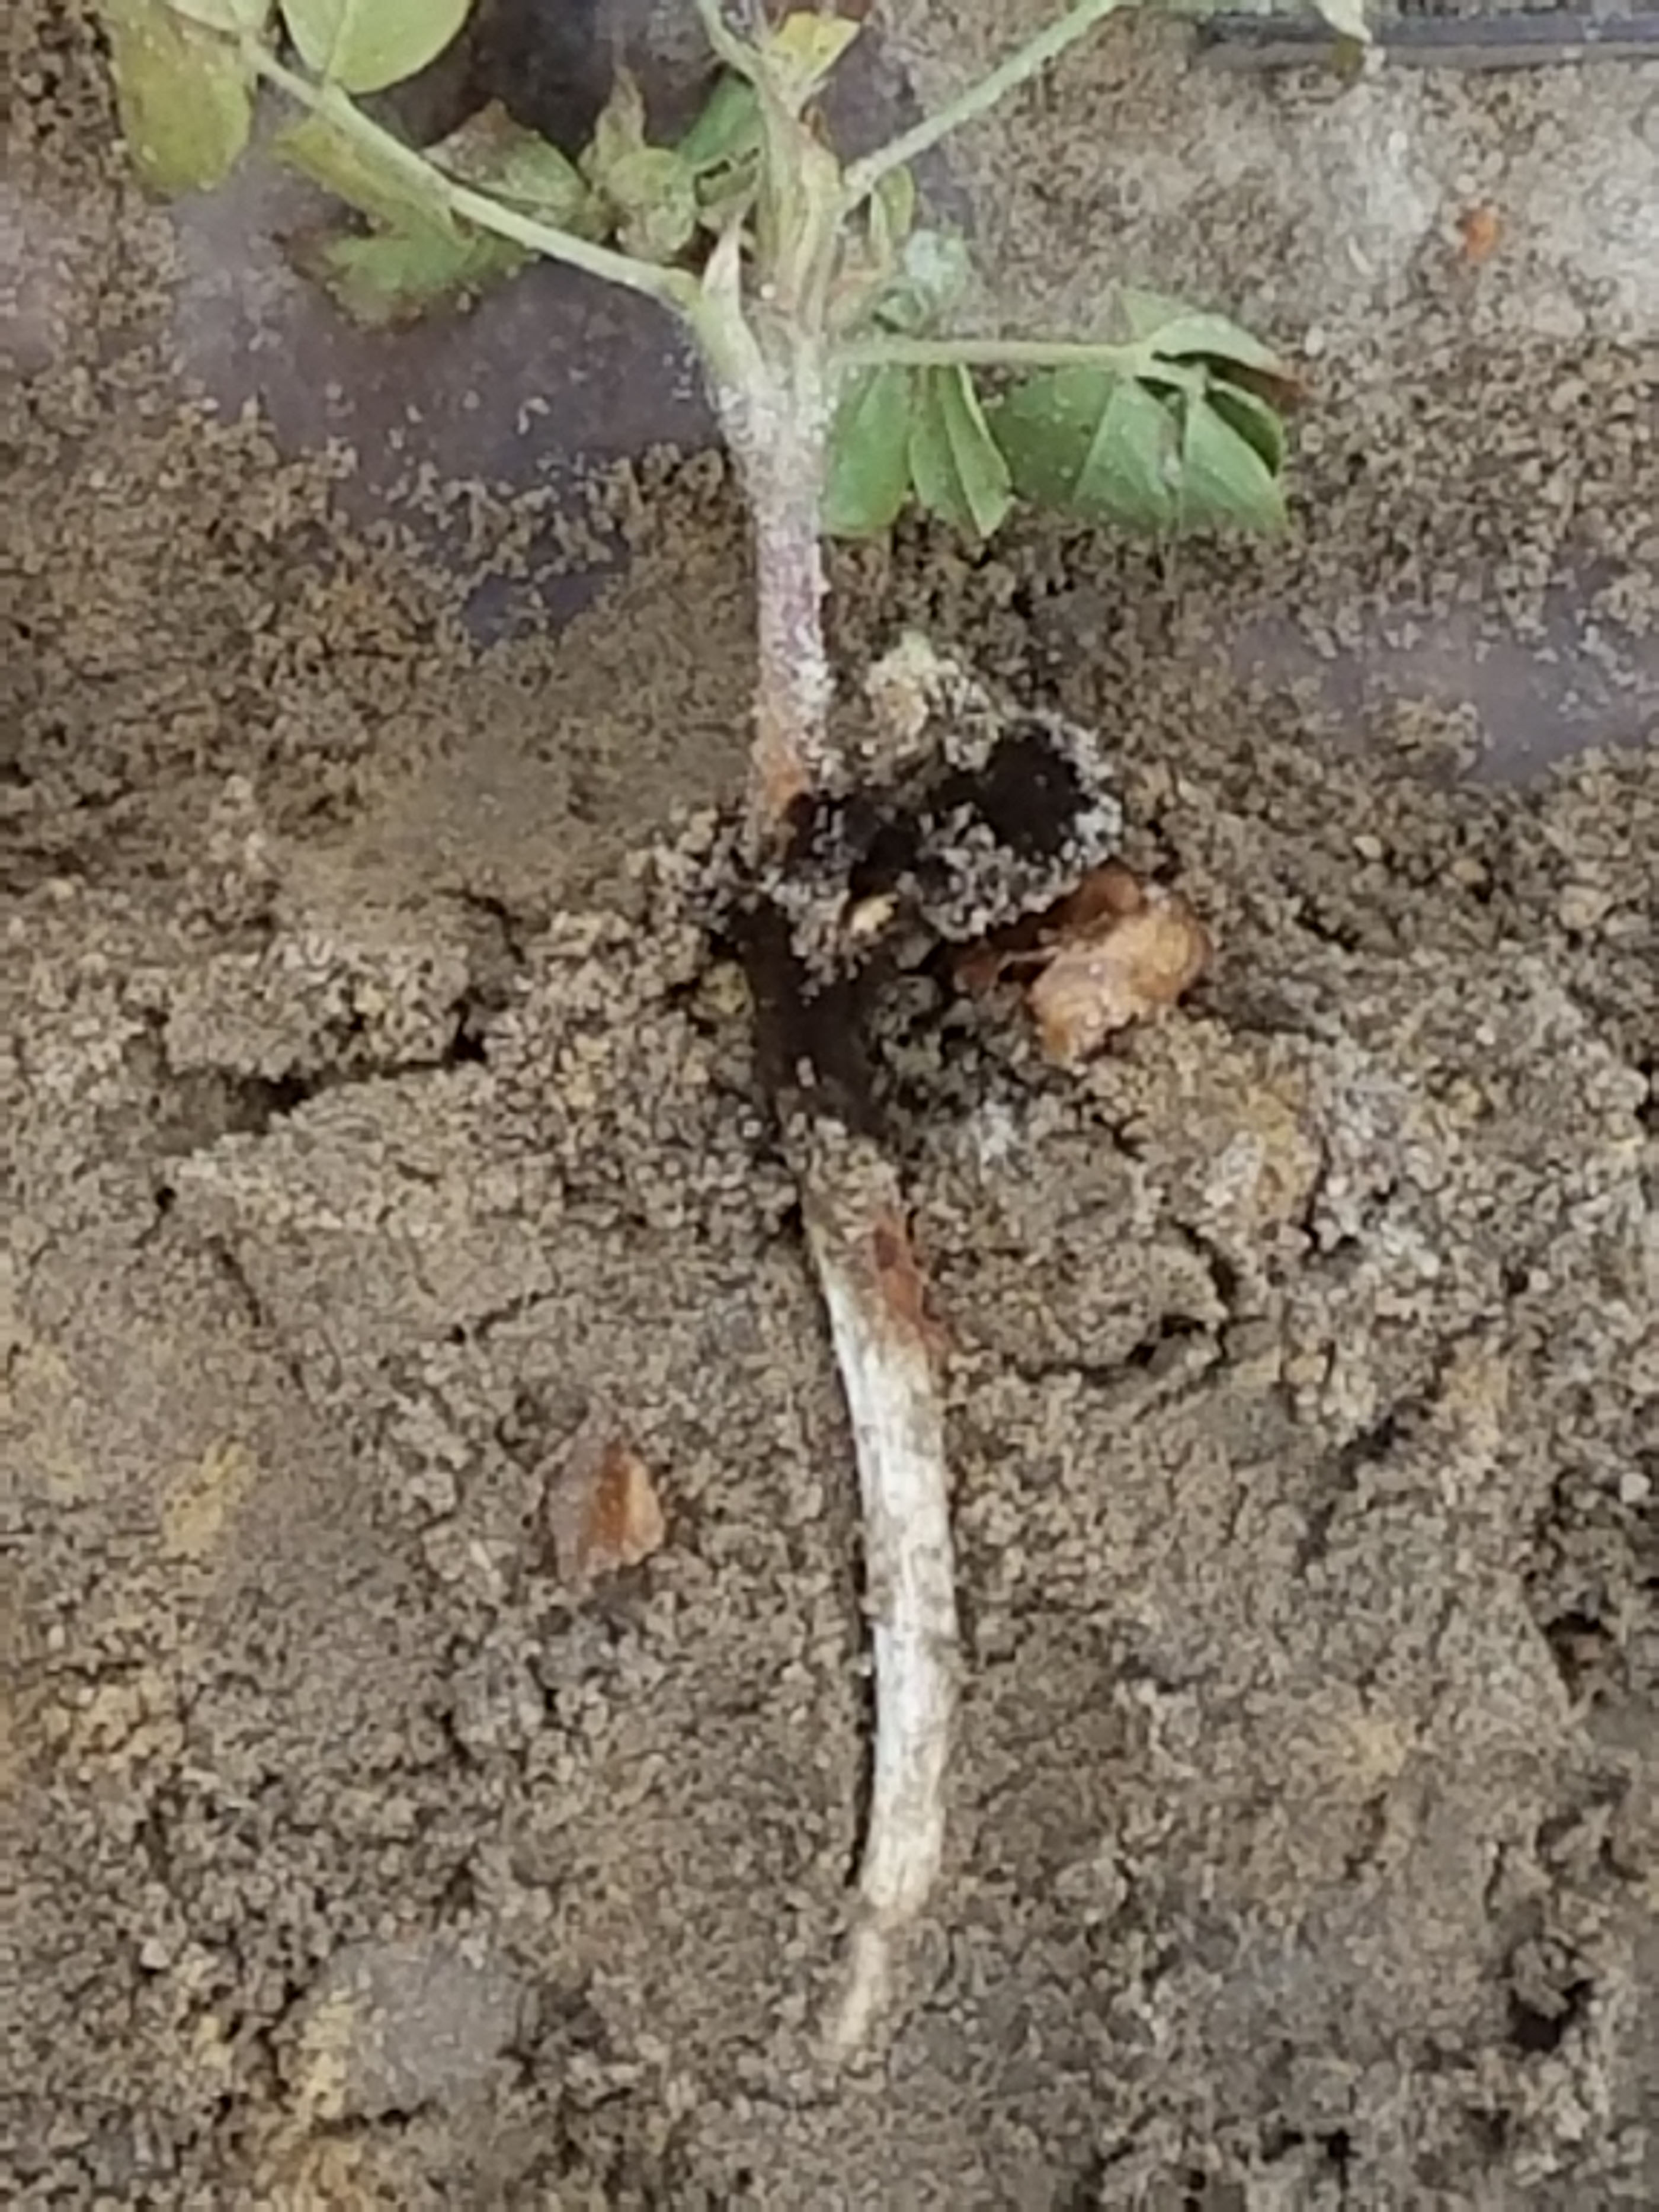 Aspergillus crown rot can be housed in the seed itself and grow into the hypocotyl, the portion of the plant found just below the soil line. The fungus can quickly destroy this tissue.